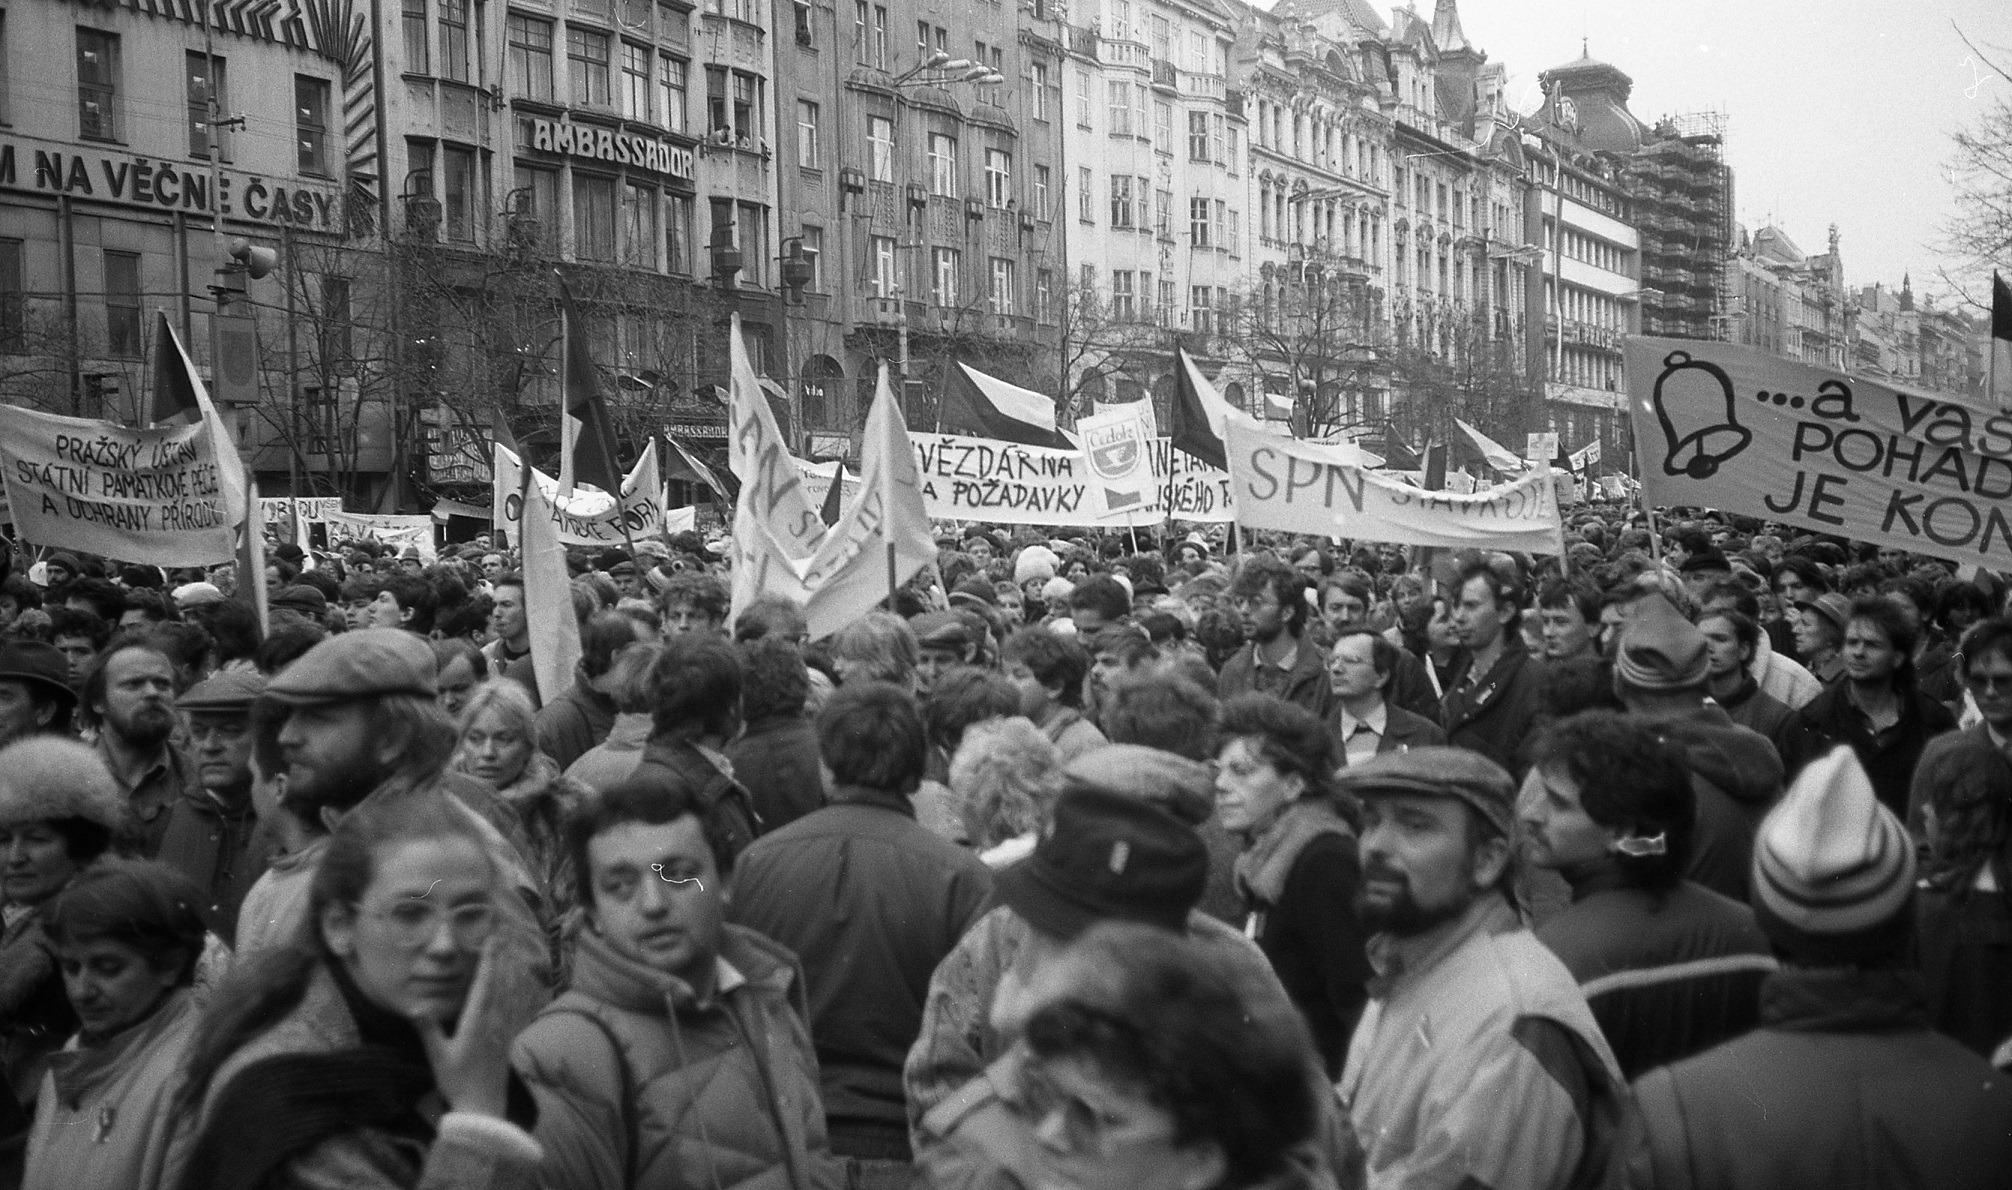 Proteste in Prag 1989 - Foto: Josef Šrámek ml., 1989 sametova revoluce 12, CC BY 4.0